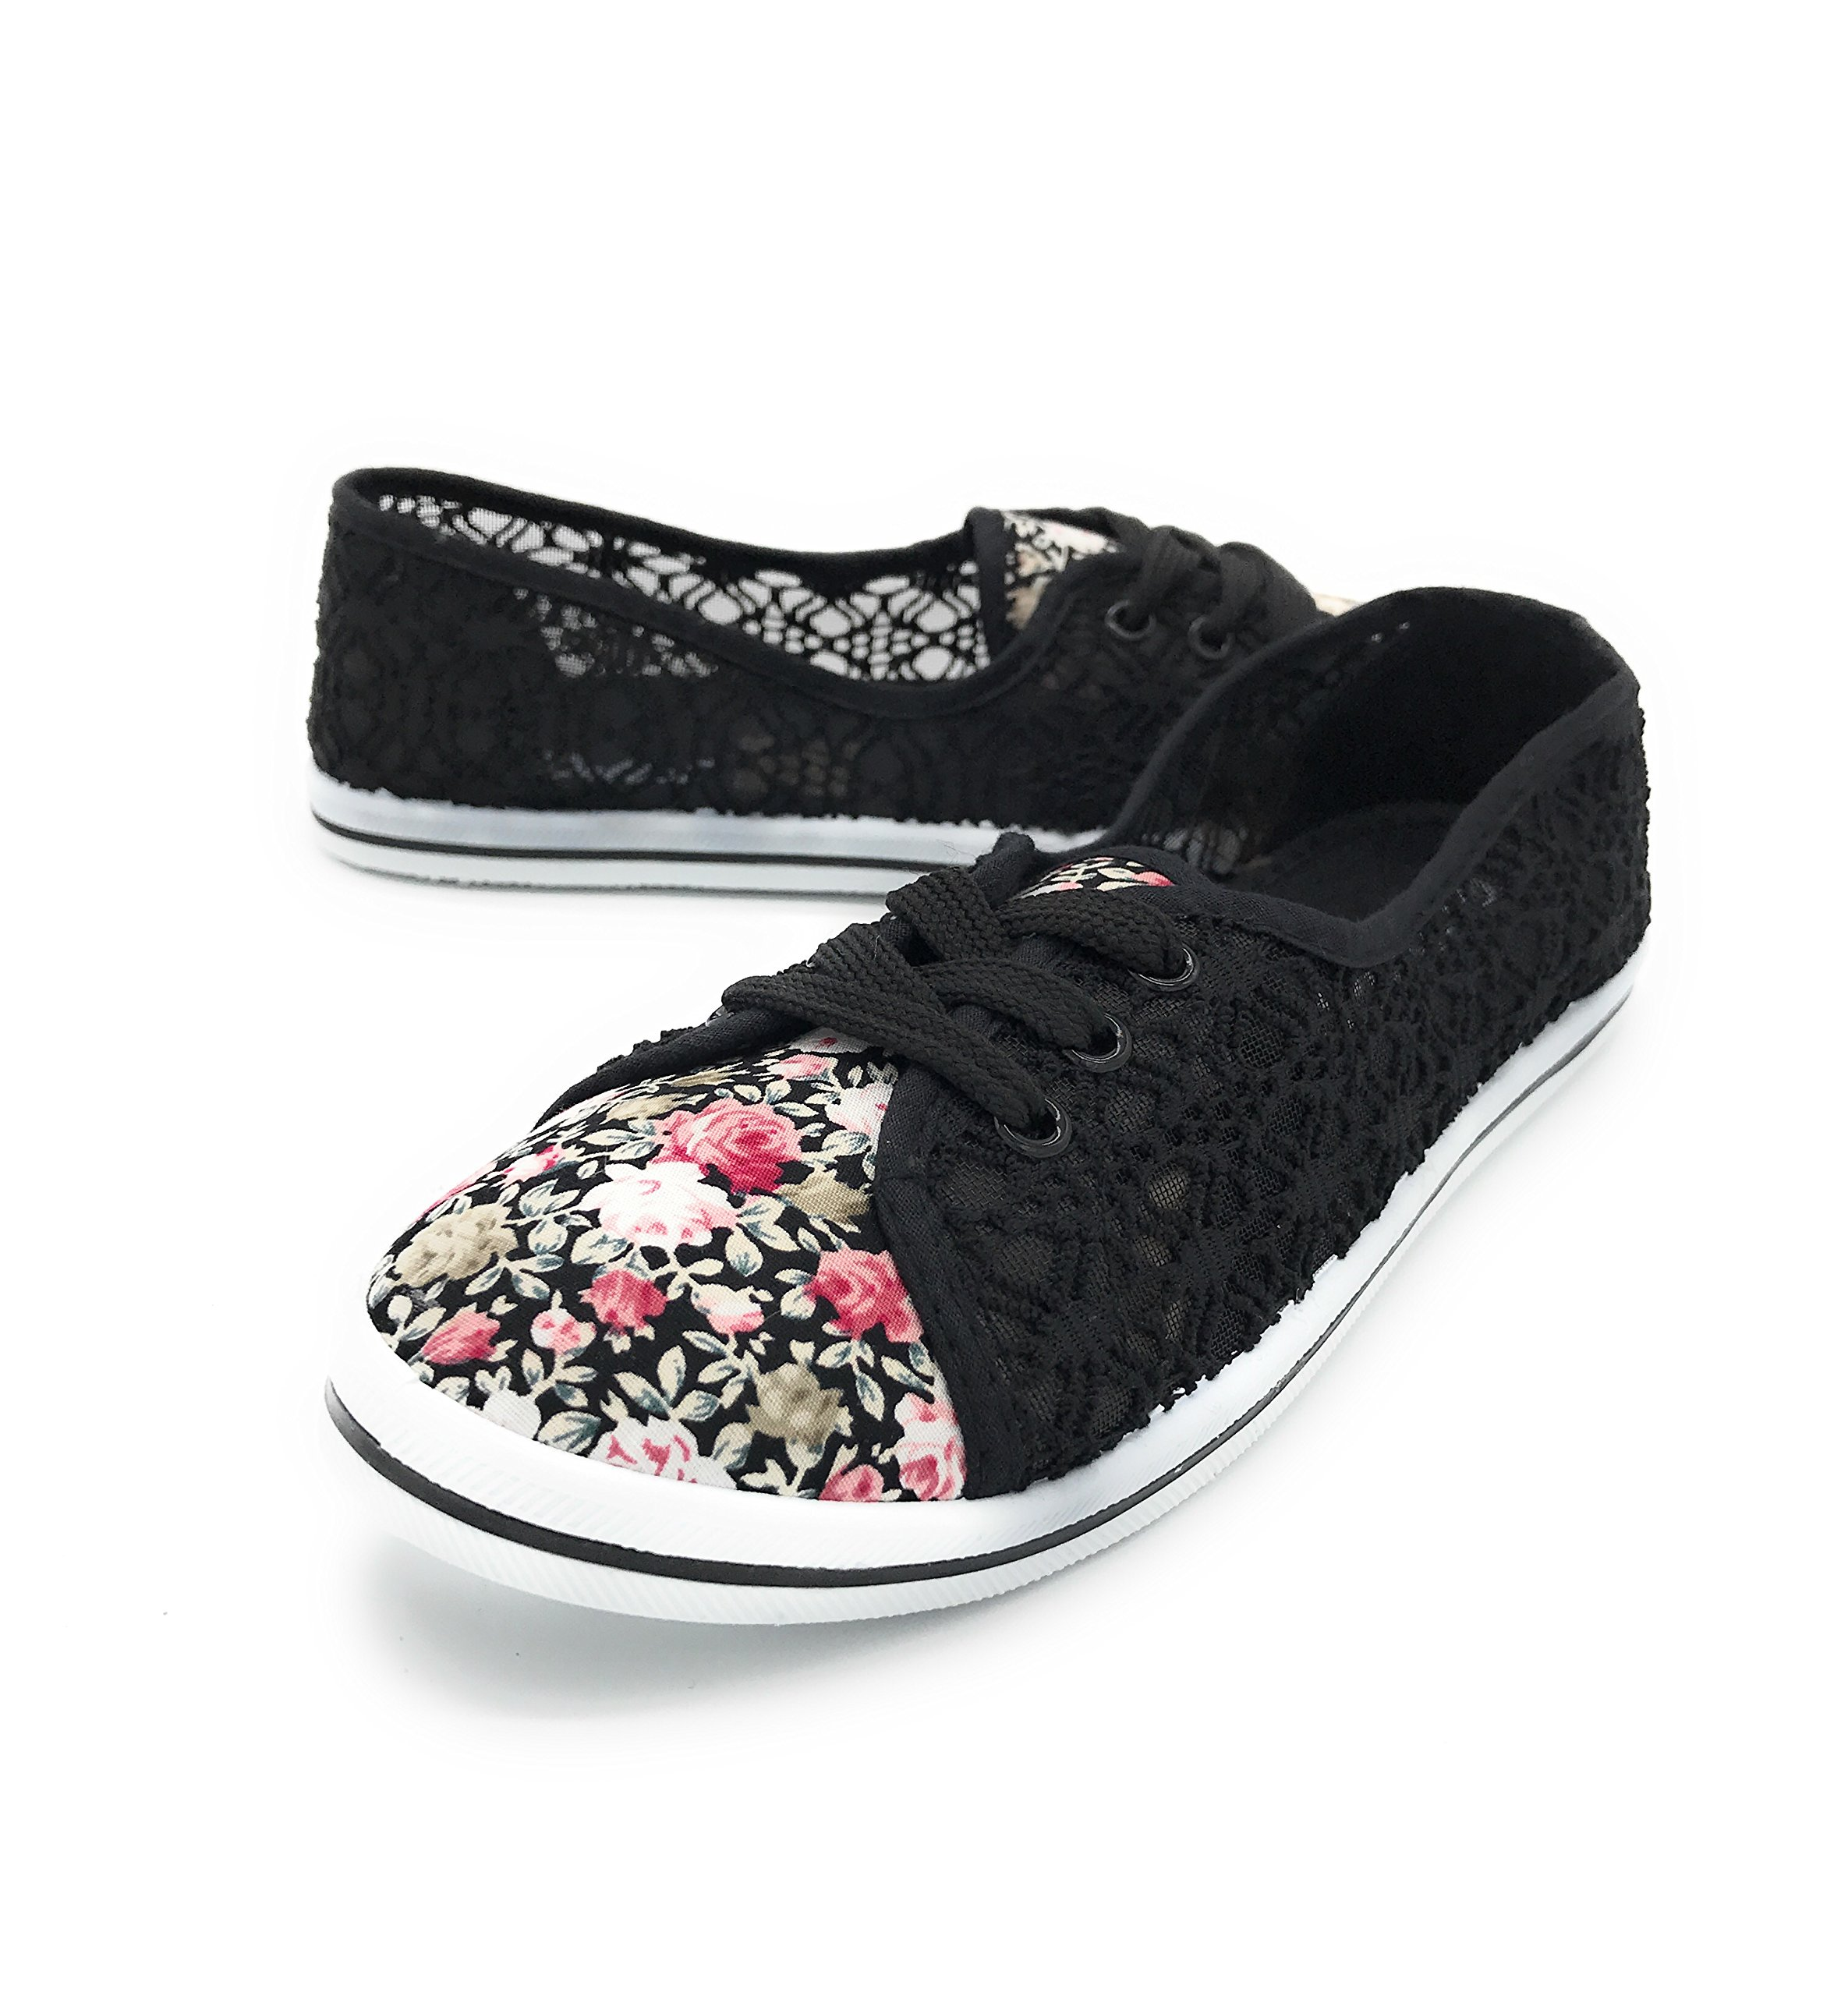 EASY21 Women and Girls Canvas Lace up Falts Ballet Kids Shoes (7.5 B(M) US, Black rose13)